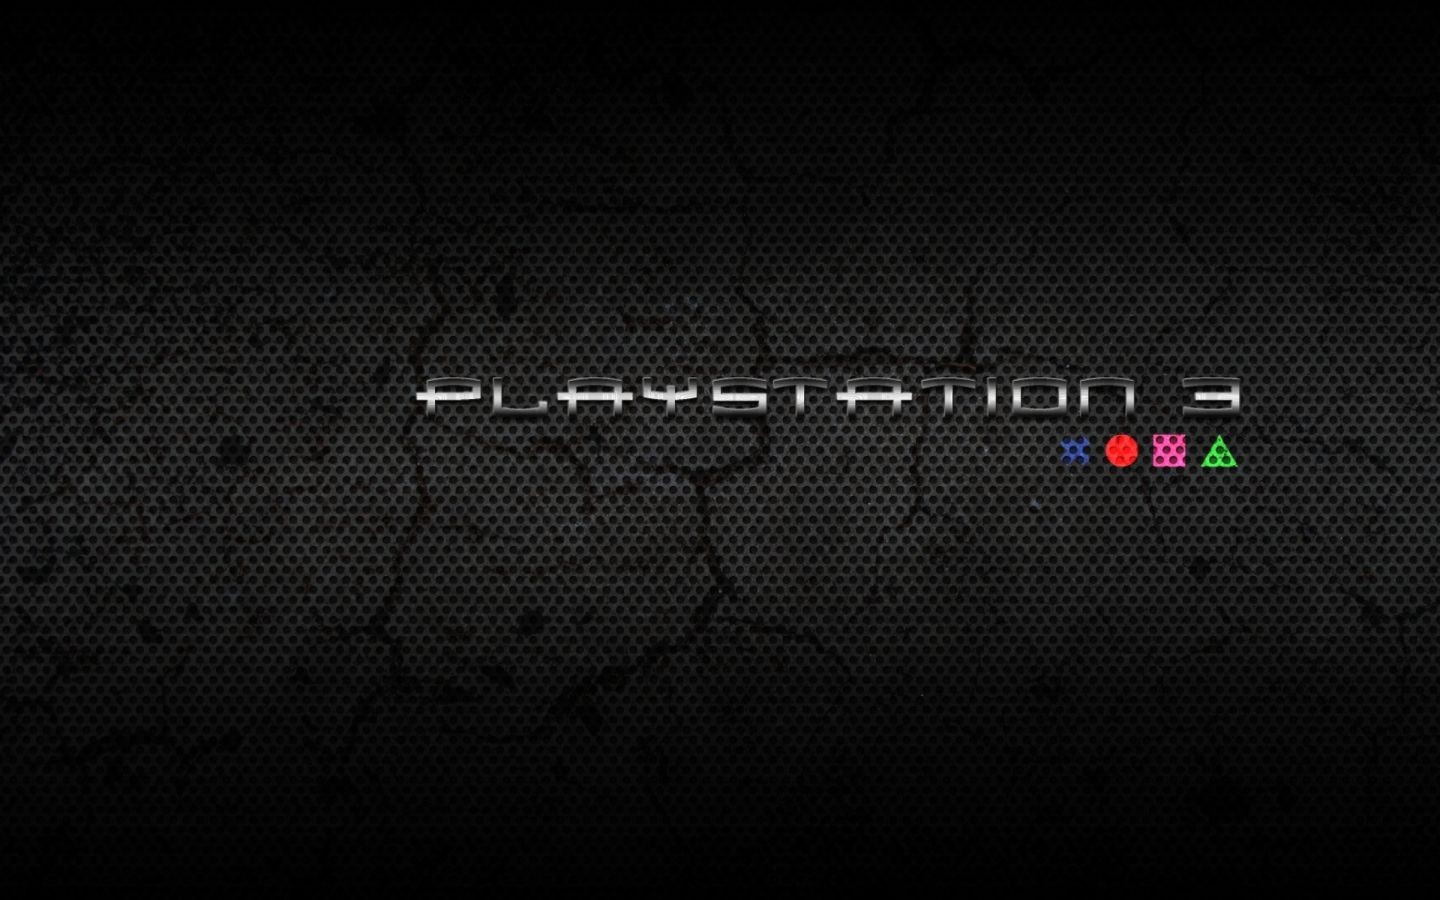 Sony Rolled Out Firmware 481 For Its PlayStation 3 Console